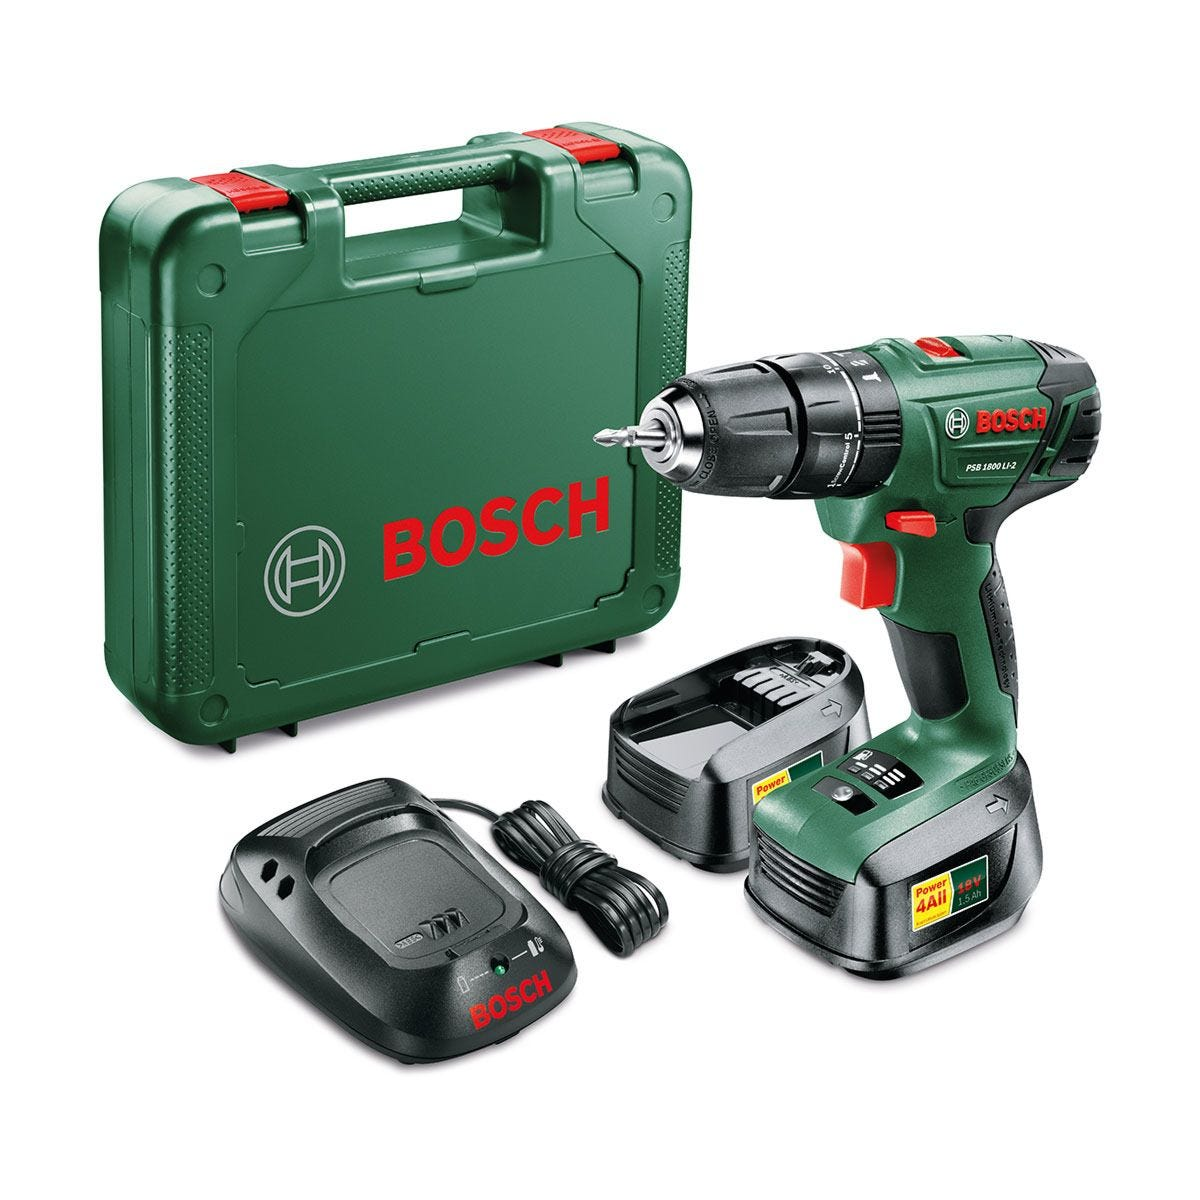 Bosch PSB Li-2 1800 18V Cordless Drill with Spare Battery & Case